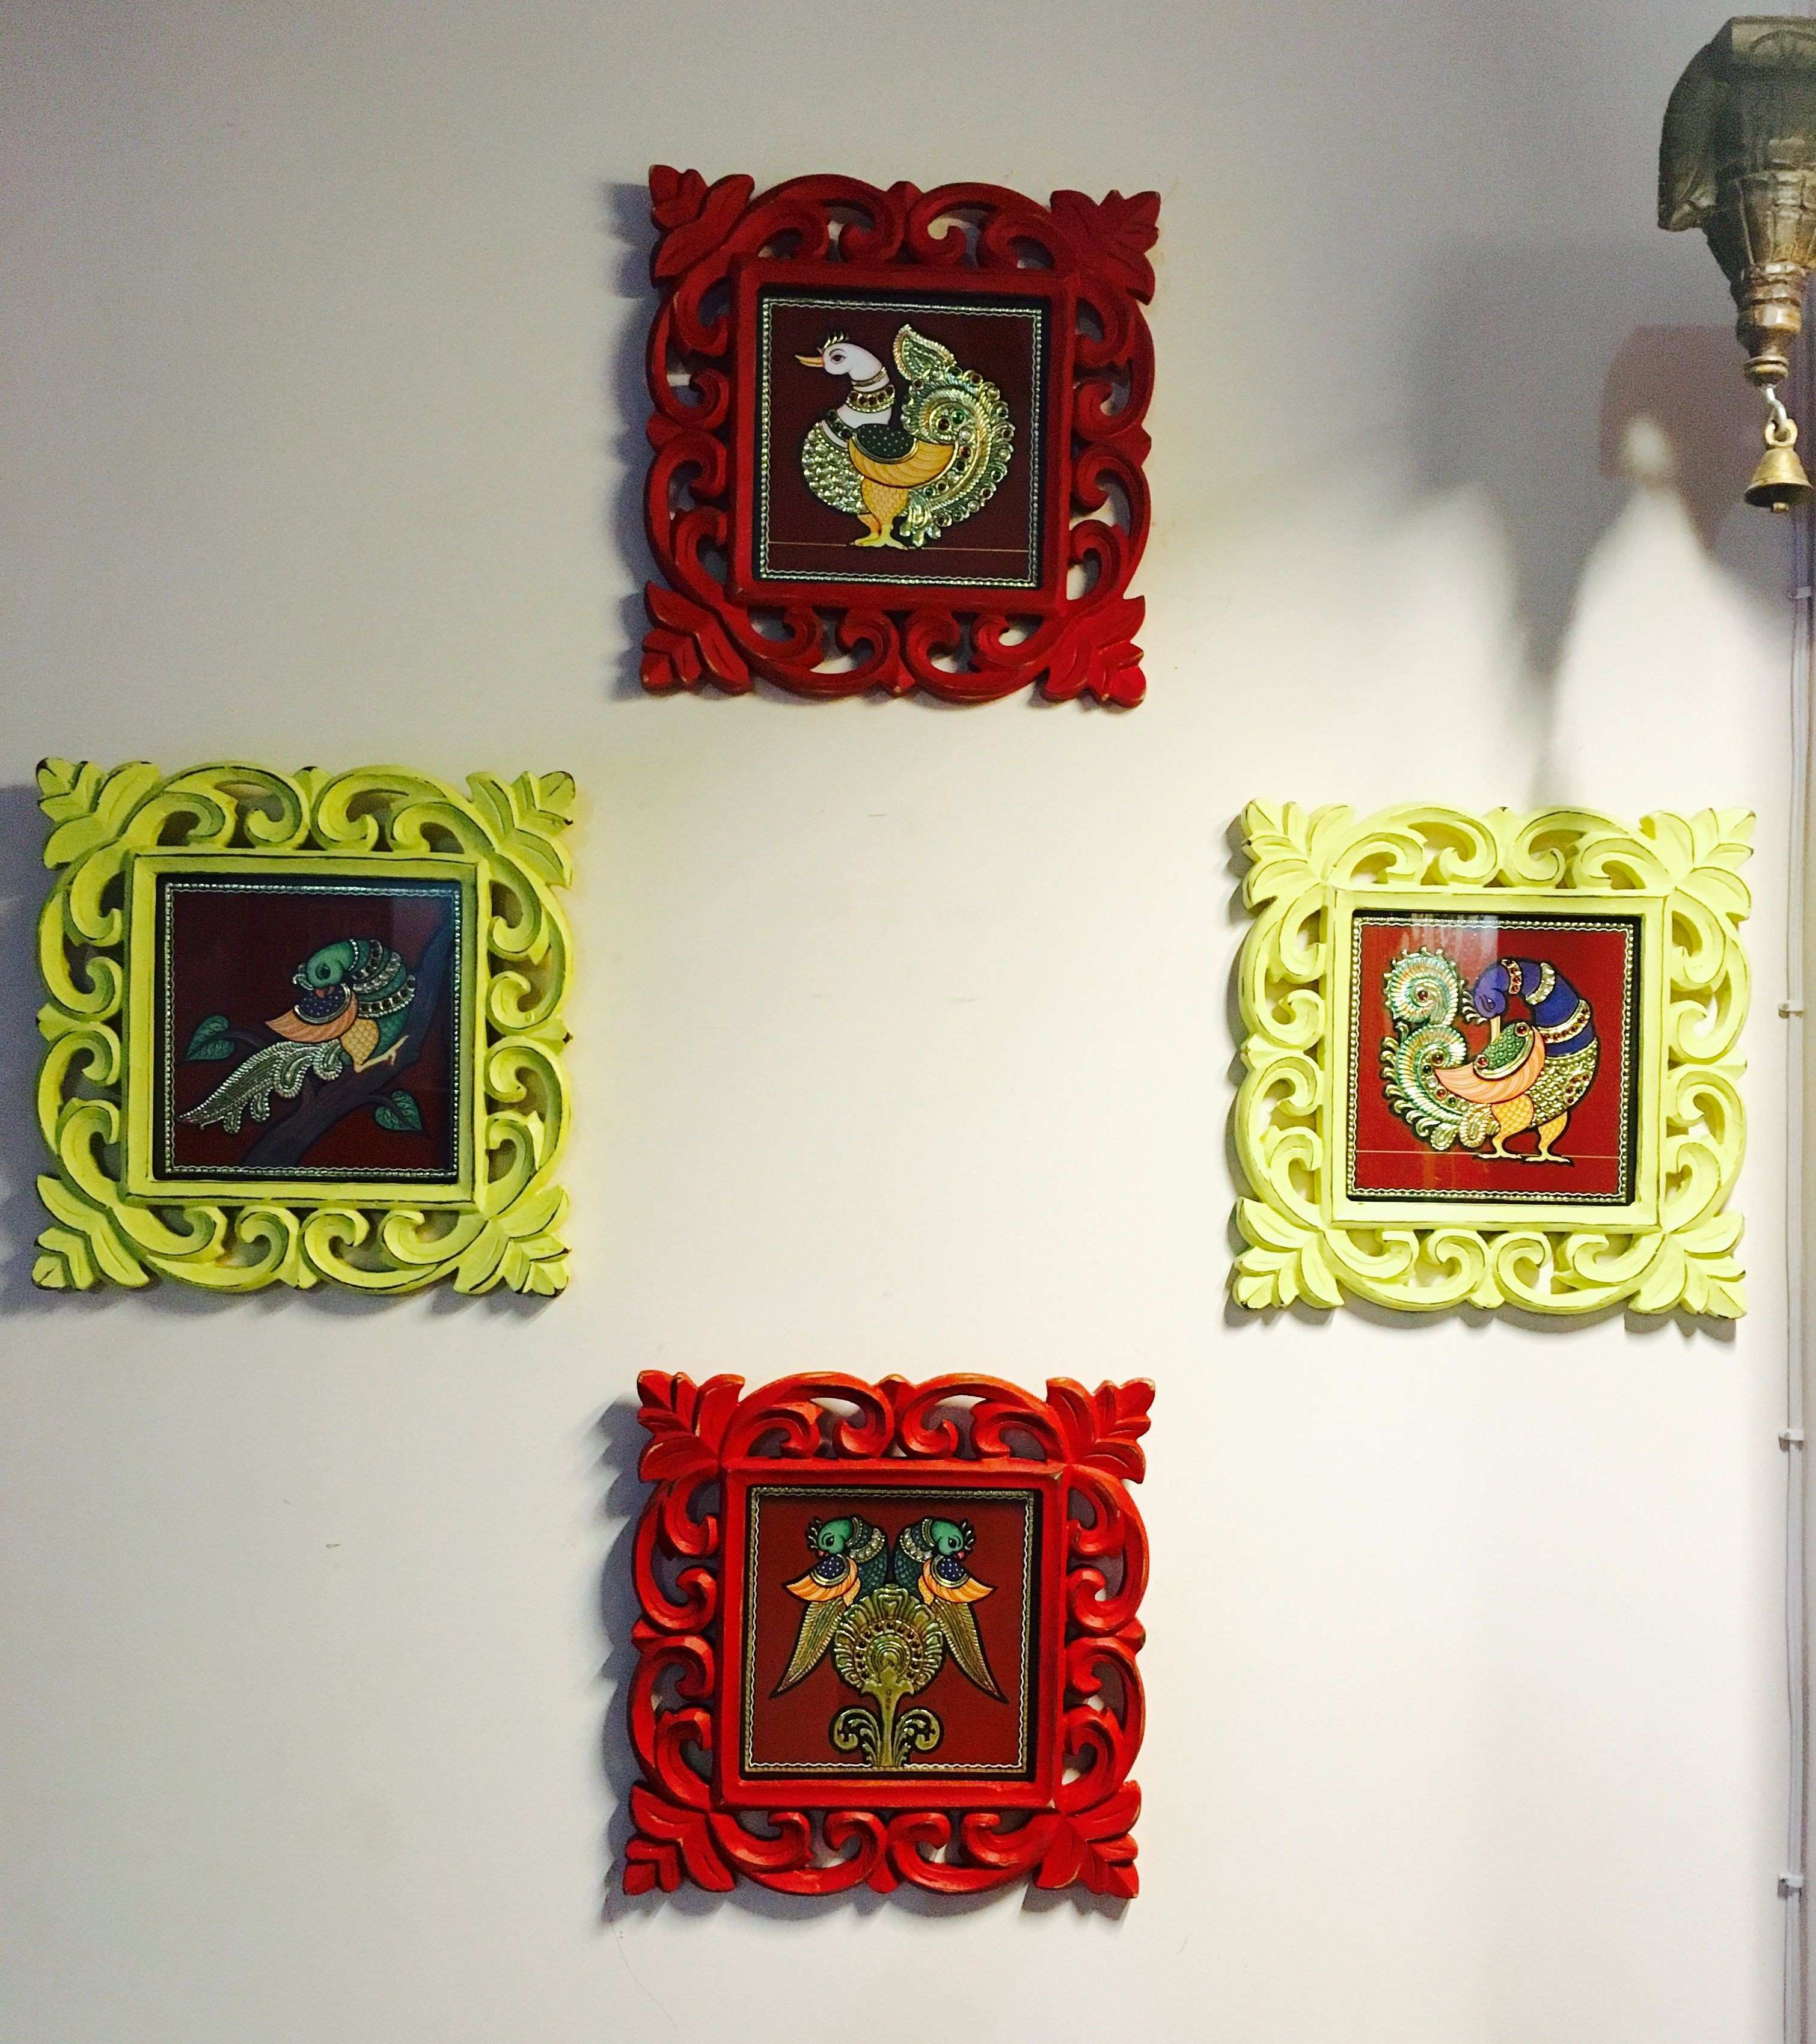 Tanjore art from Indian artistry done up in colourful frames bring